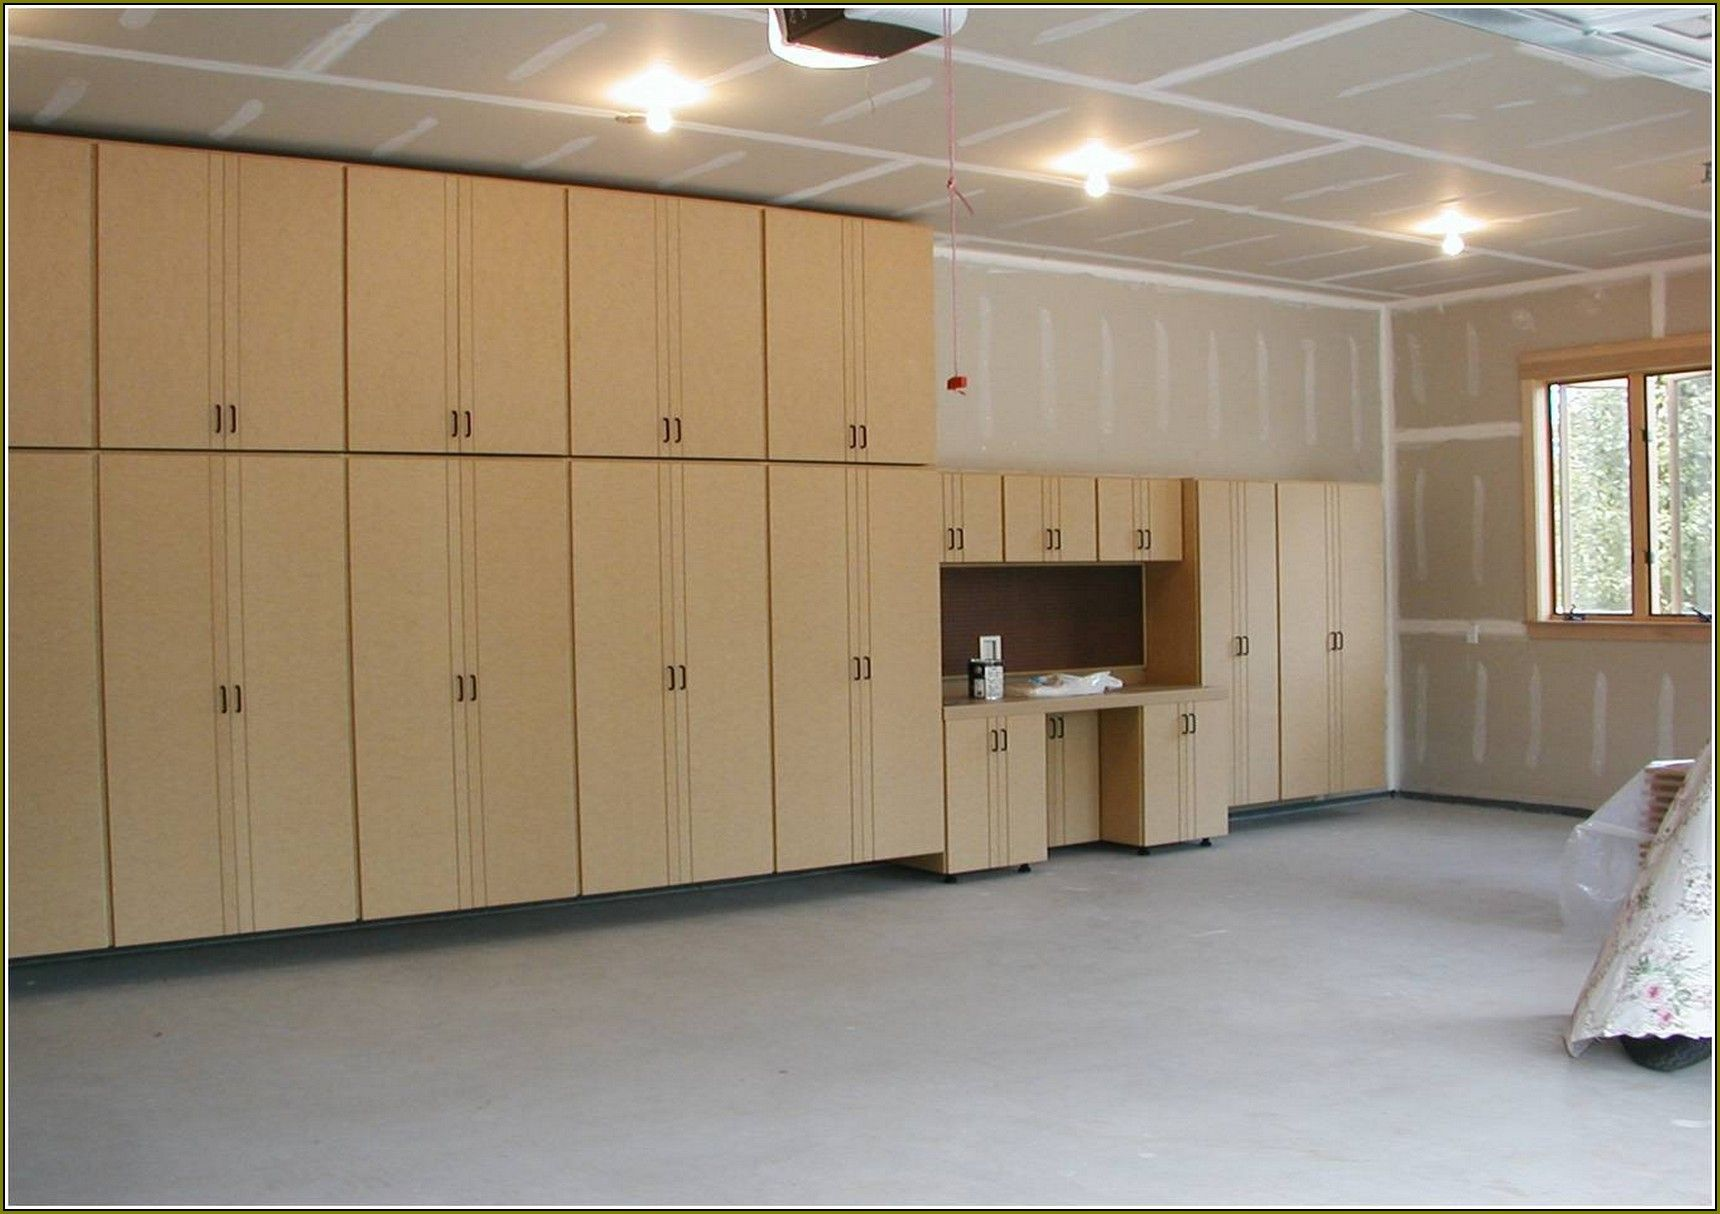 Garage Cabinet Design Plans Diy Garage Cabinets To Make Your Garage Look Cooler  Diy Garage